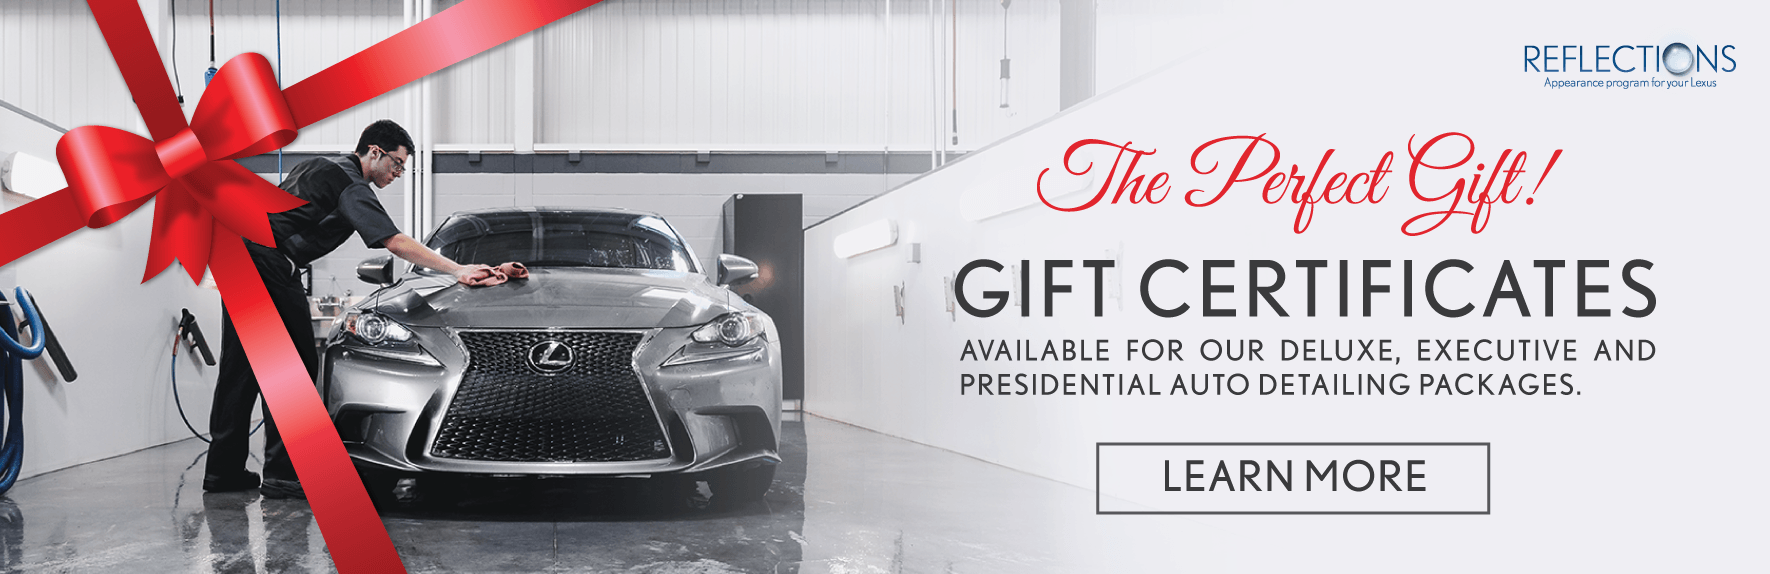 Lexus detailing in Toronto gift certificate packages